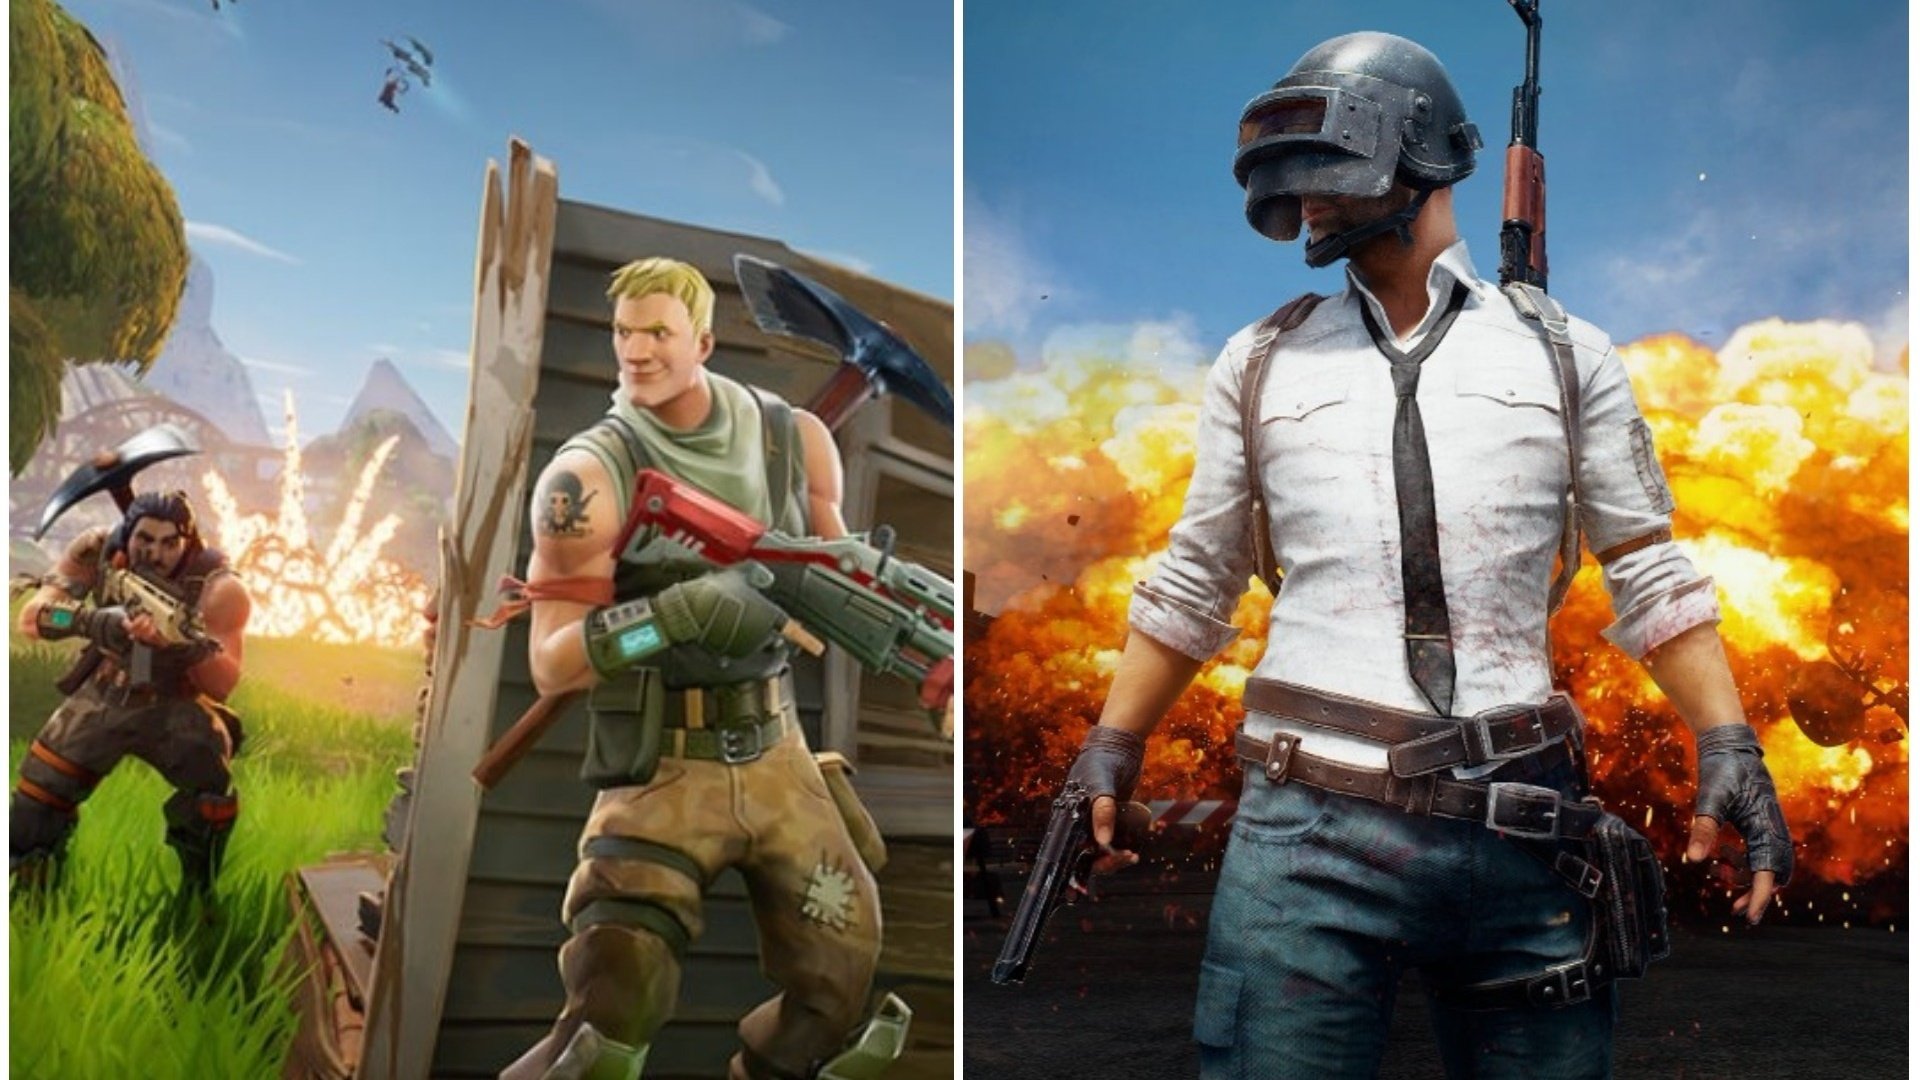 Fortnite vs PUBG: which is the game for you? | TechRadar